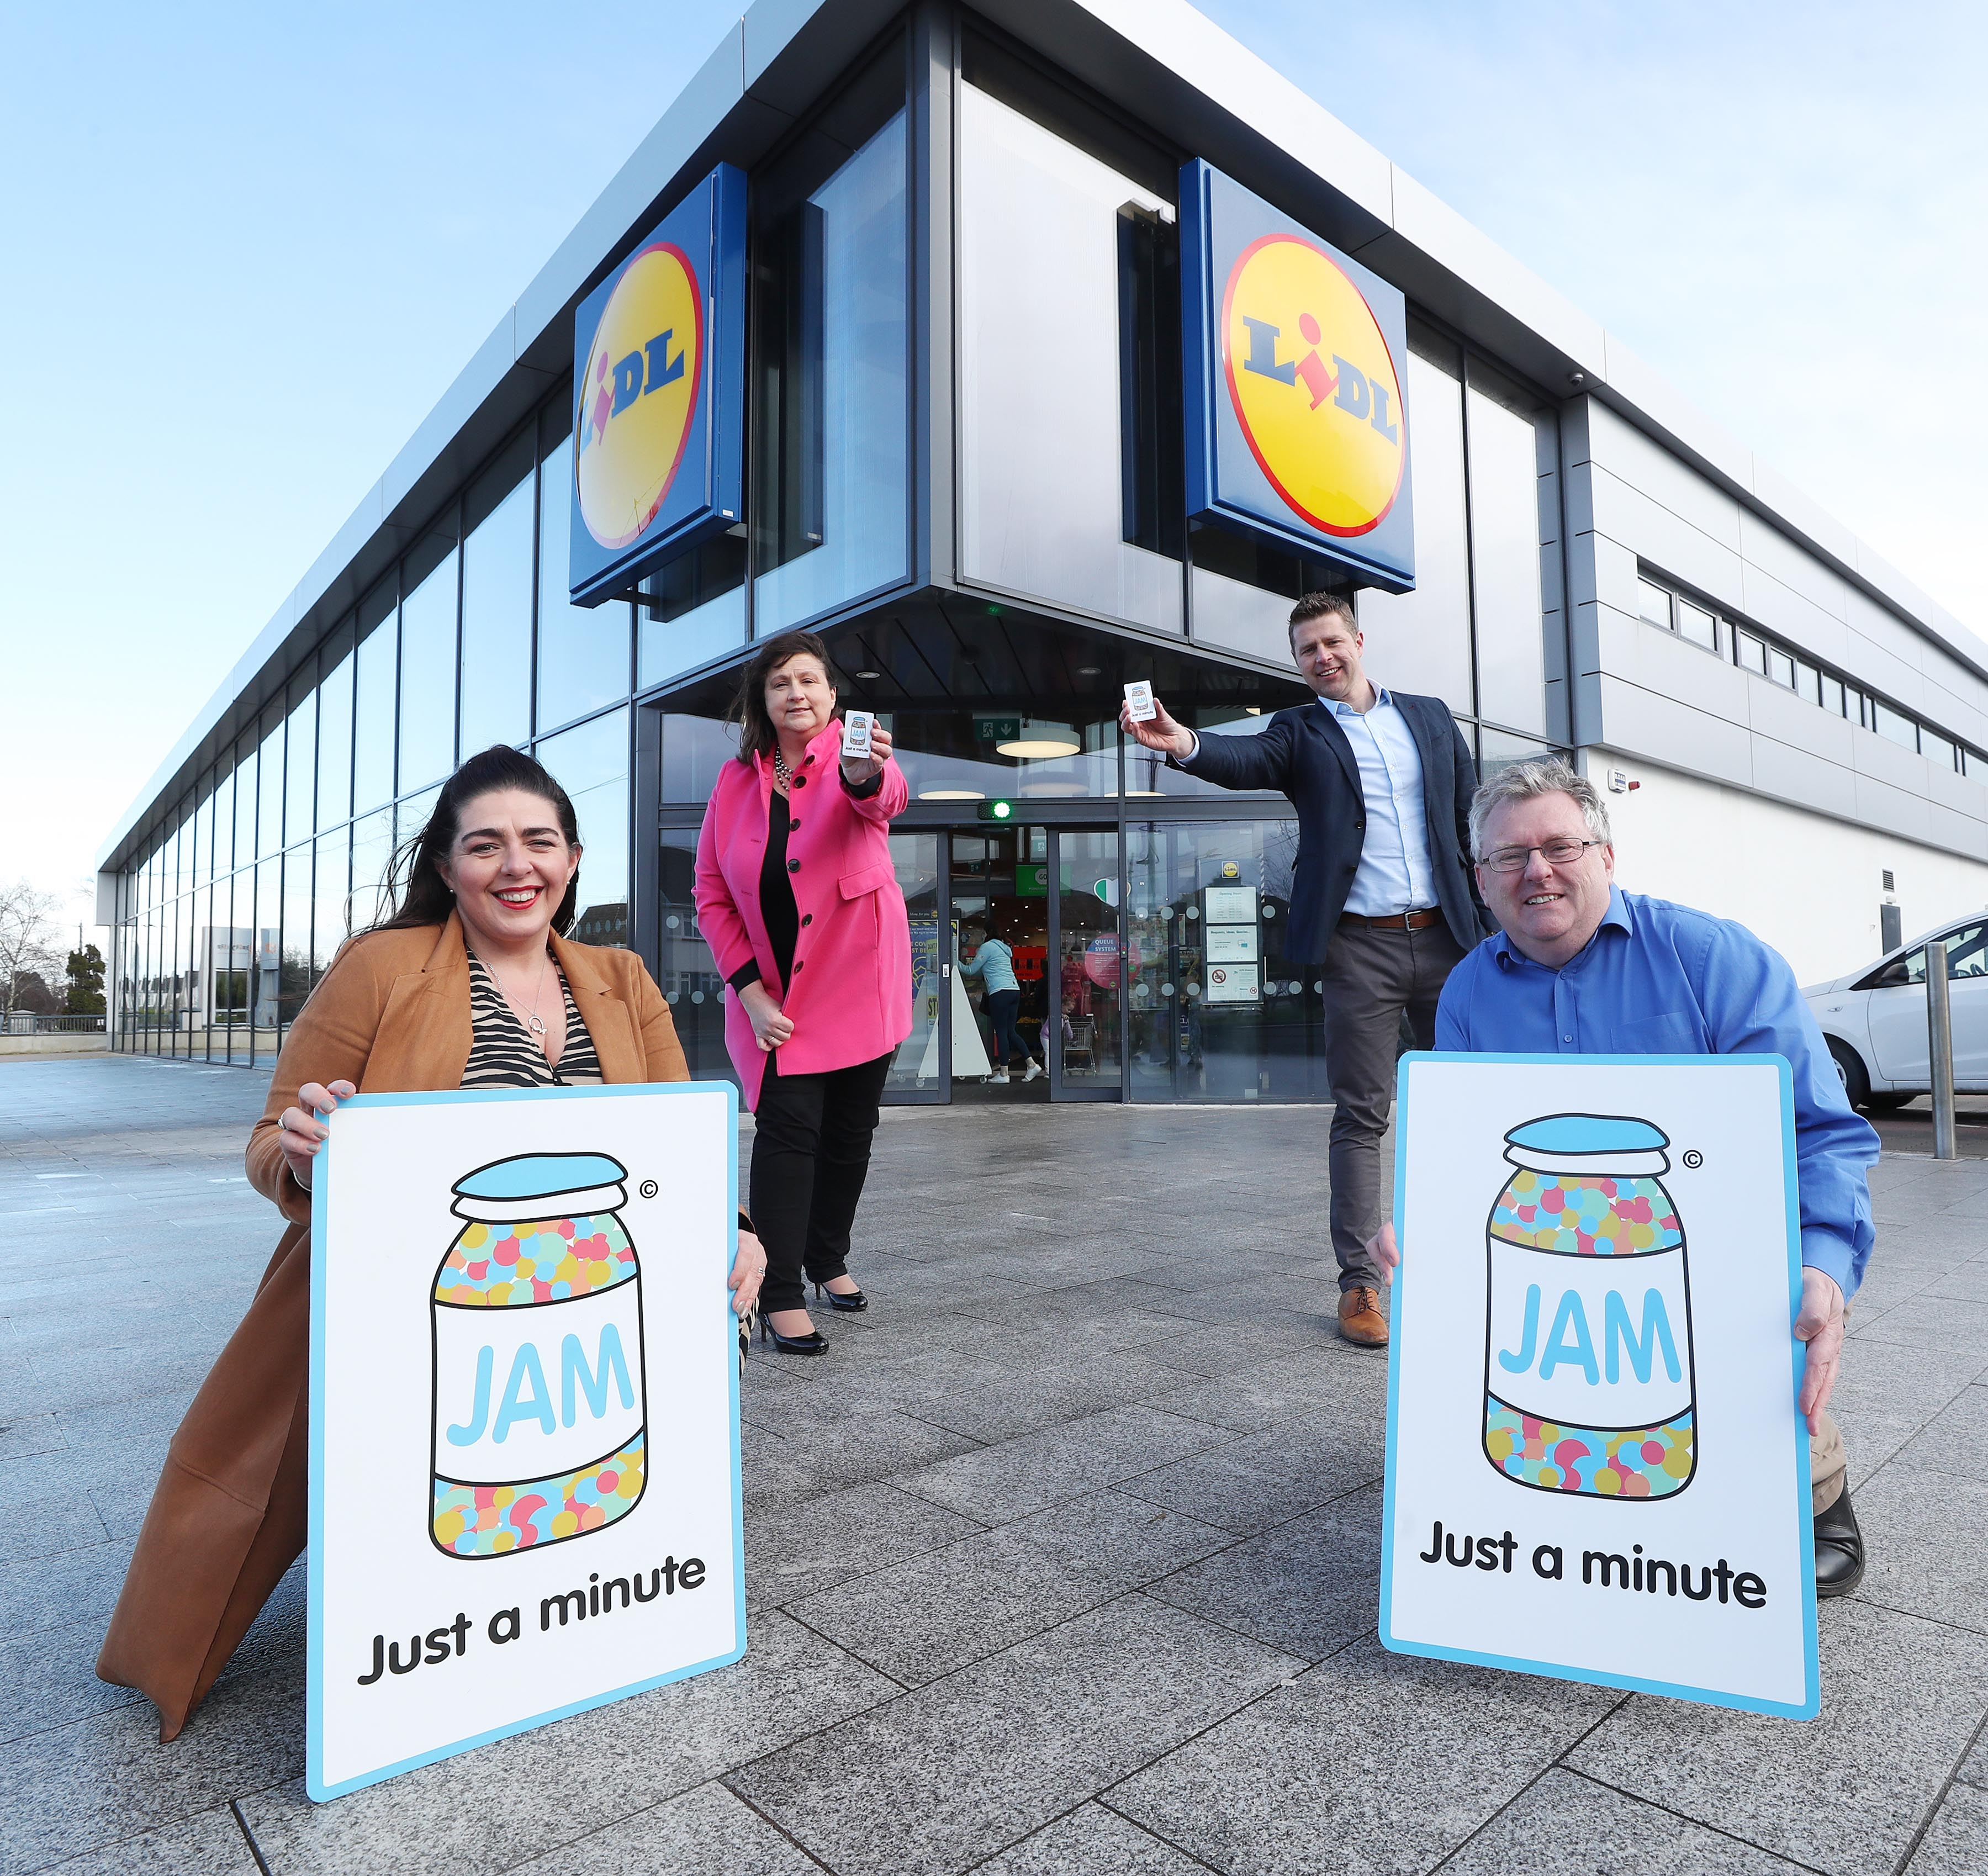 Lidl Ireland Further Demonstrates Commitment to Vulnerable Customers by Being First Irish Retailer To Become JAM Card Friendly